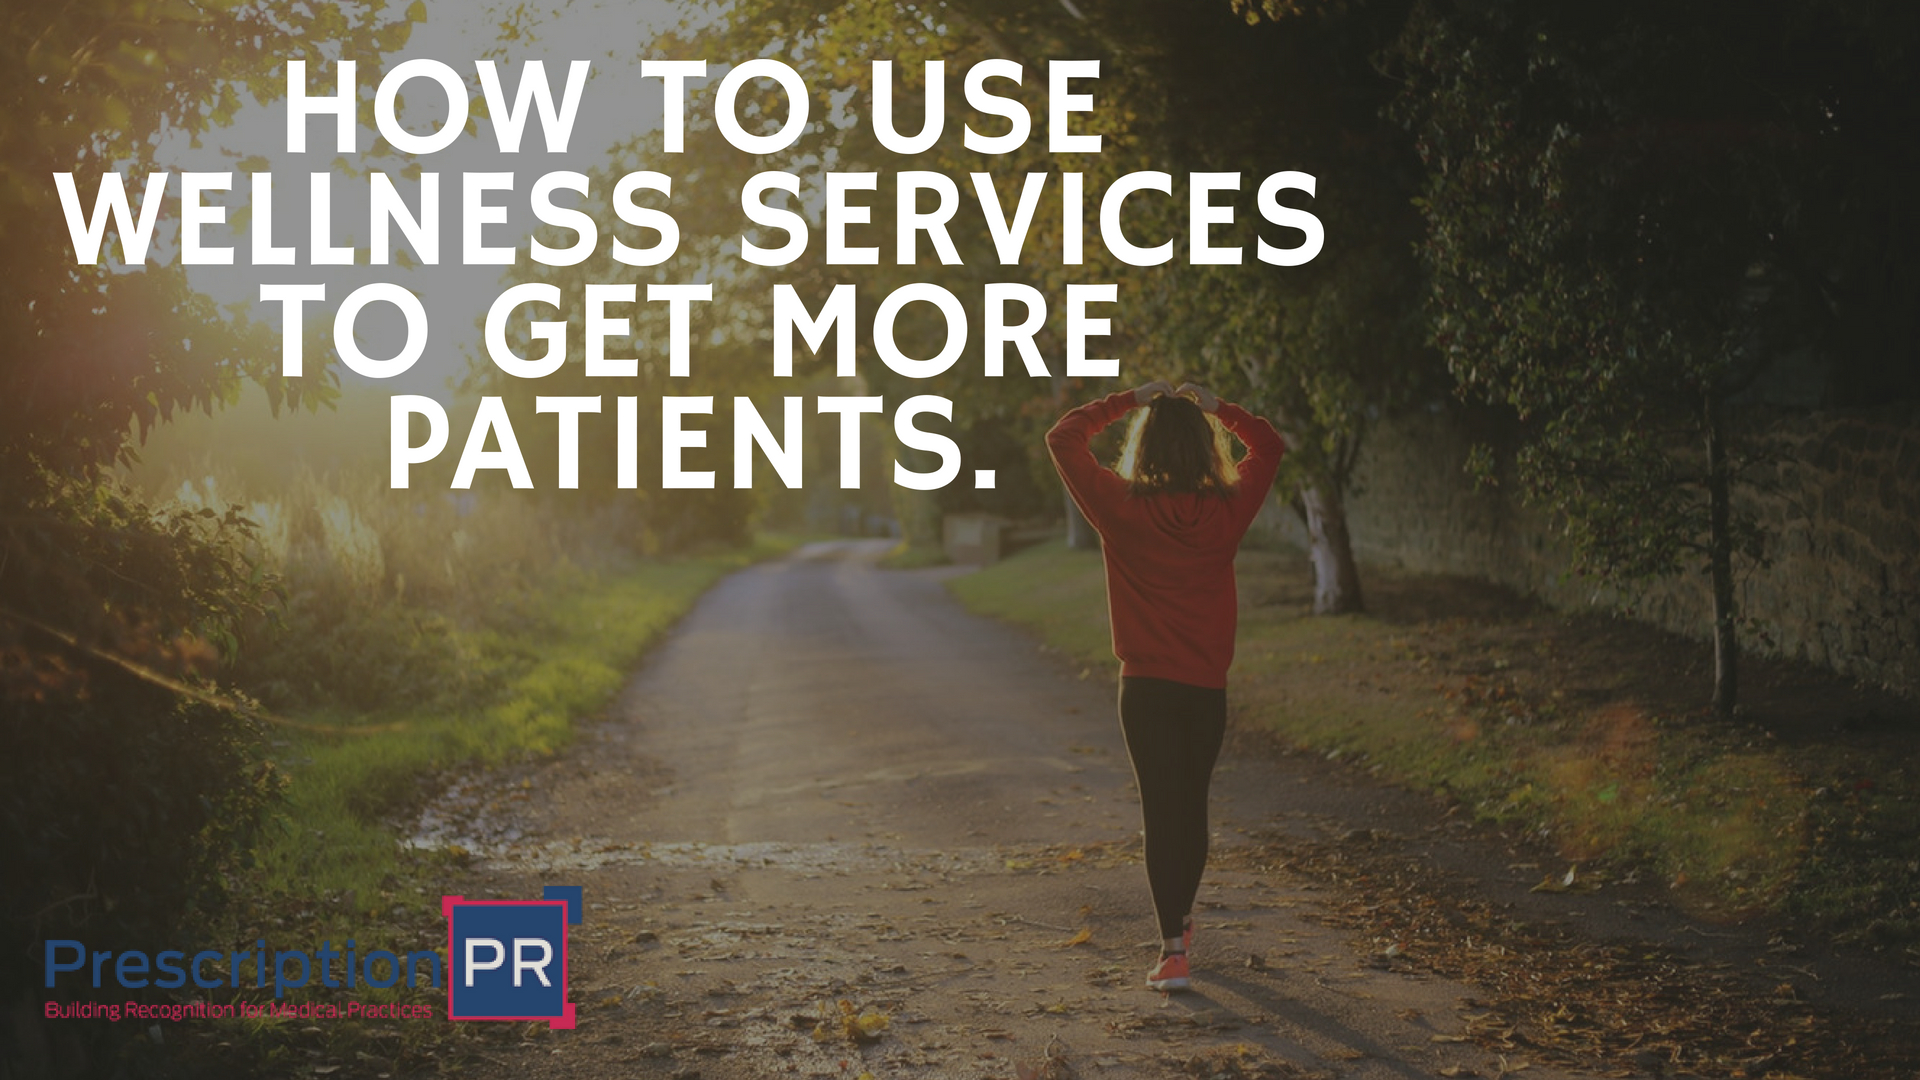 How to use wellness services to get more patients